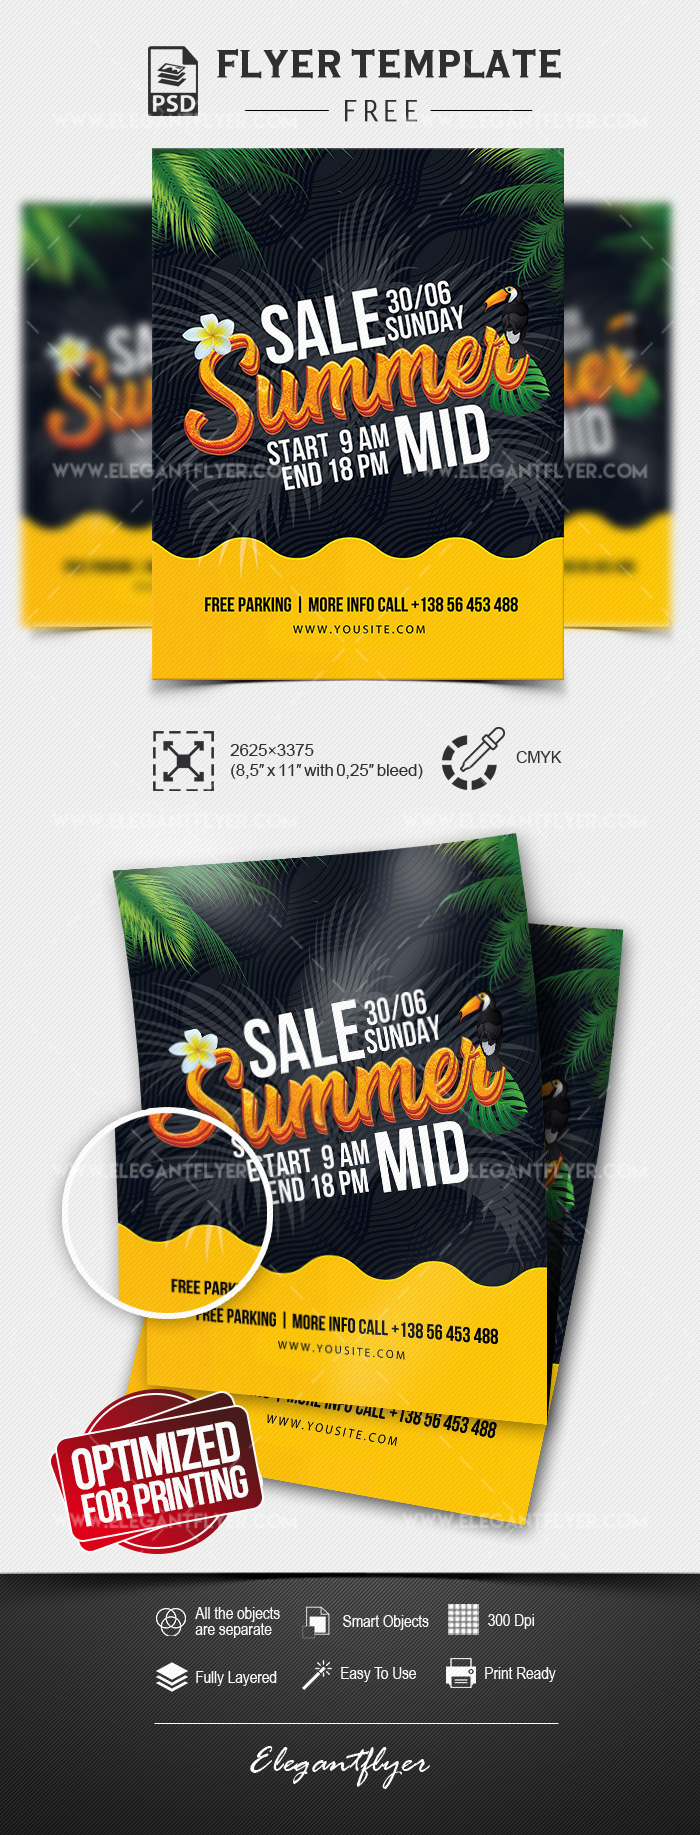 Summer Mid Sale – Free Flyer Template in PSD